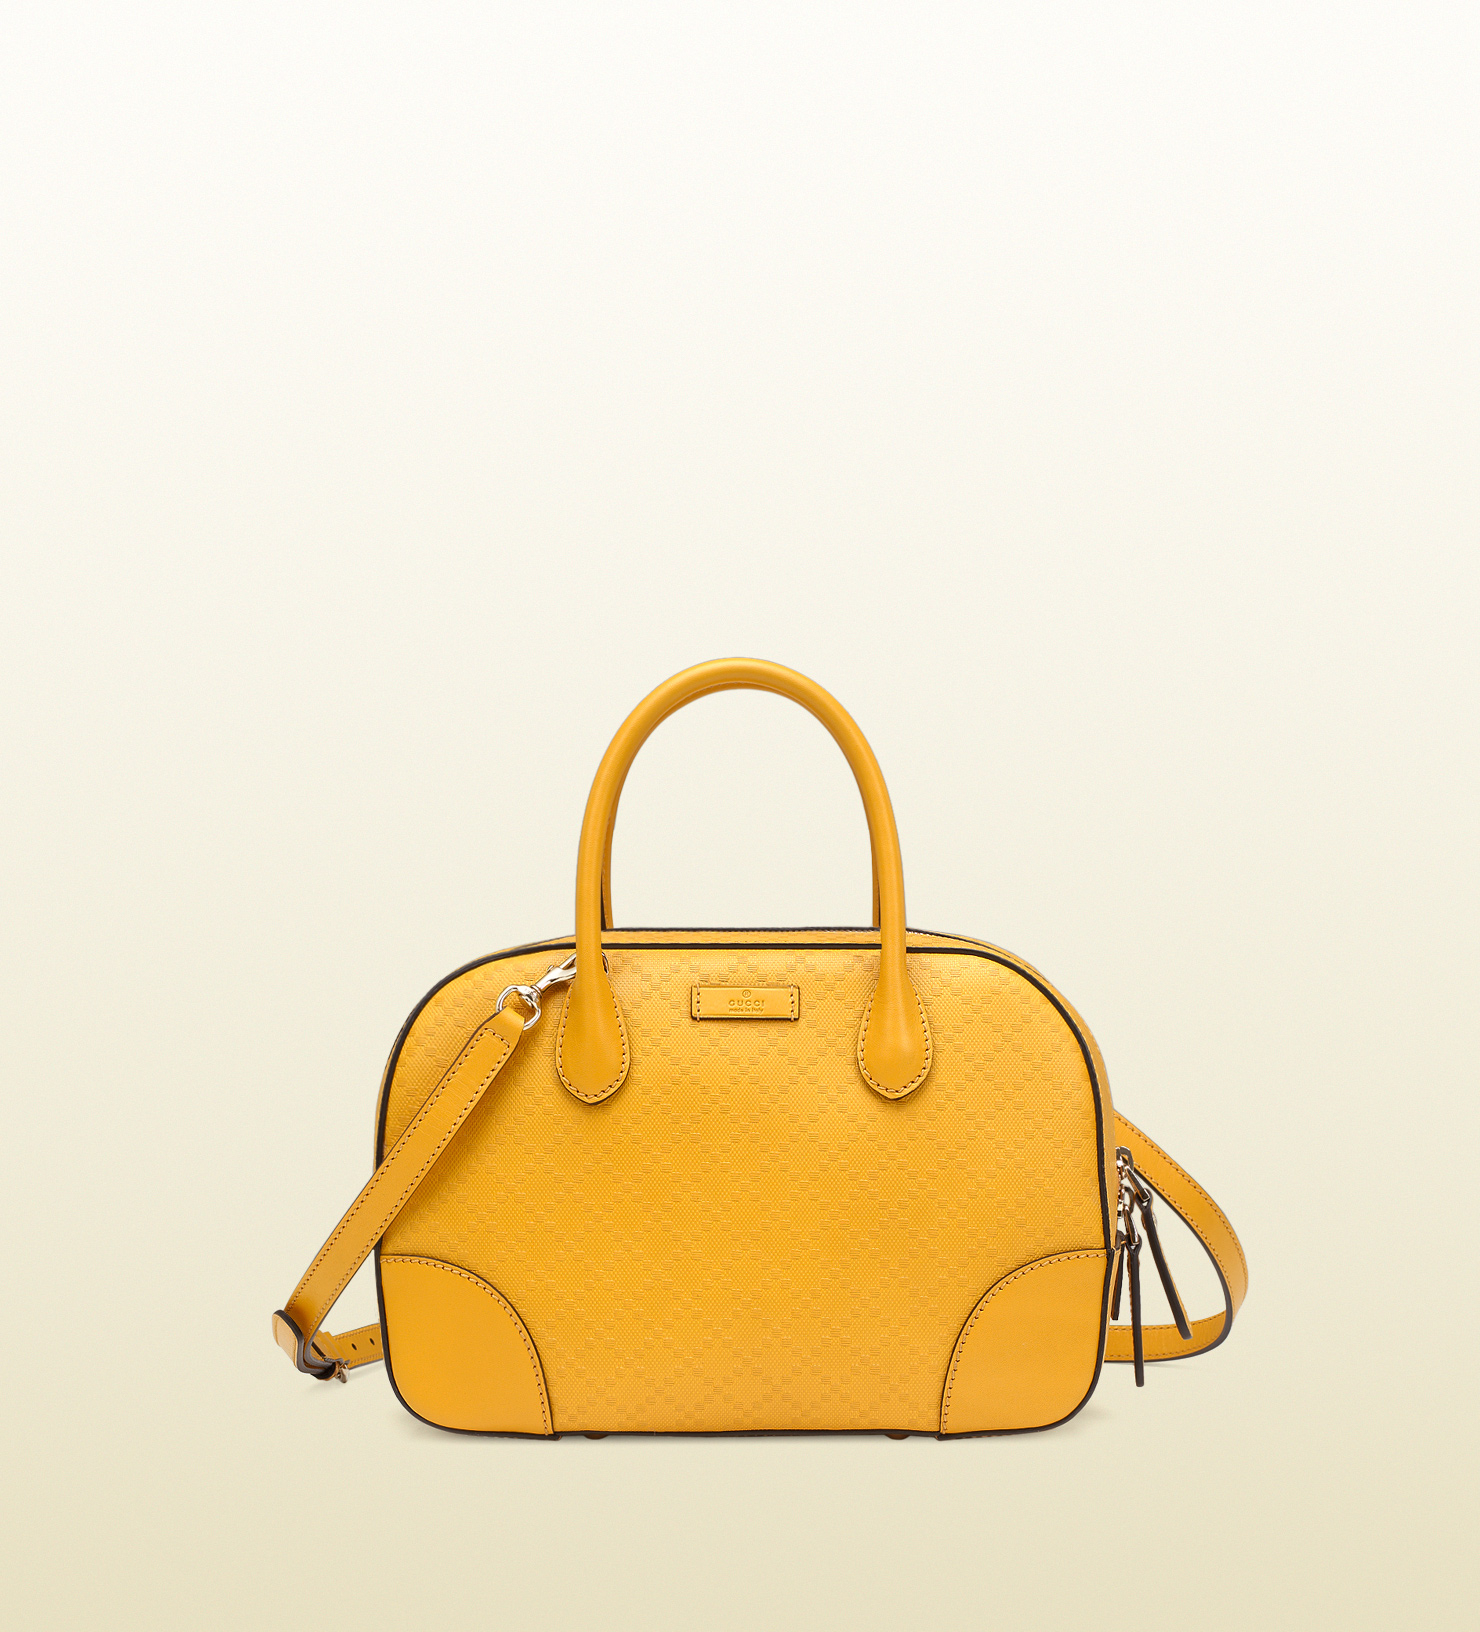 cd20492c533 Lyst gucci bright diamante leather top handle bag in yellow jpg 1480x1632 Gucci  yellow bag